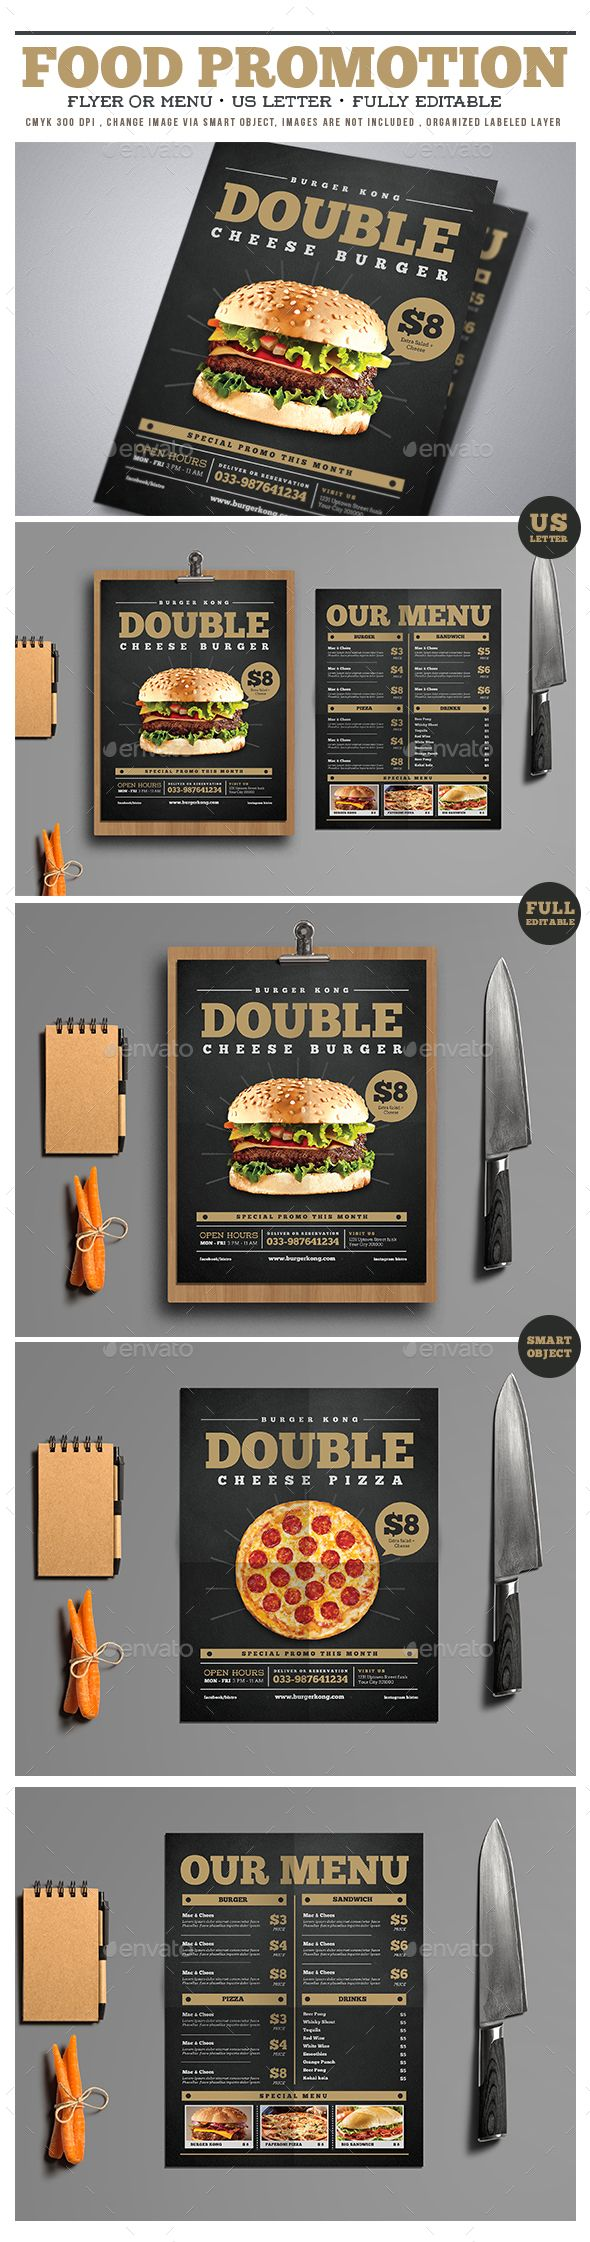 Food Promotion Flyer/Menu - Download…